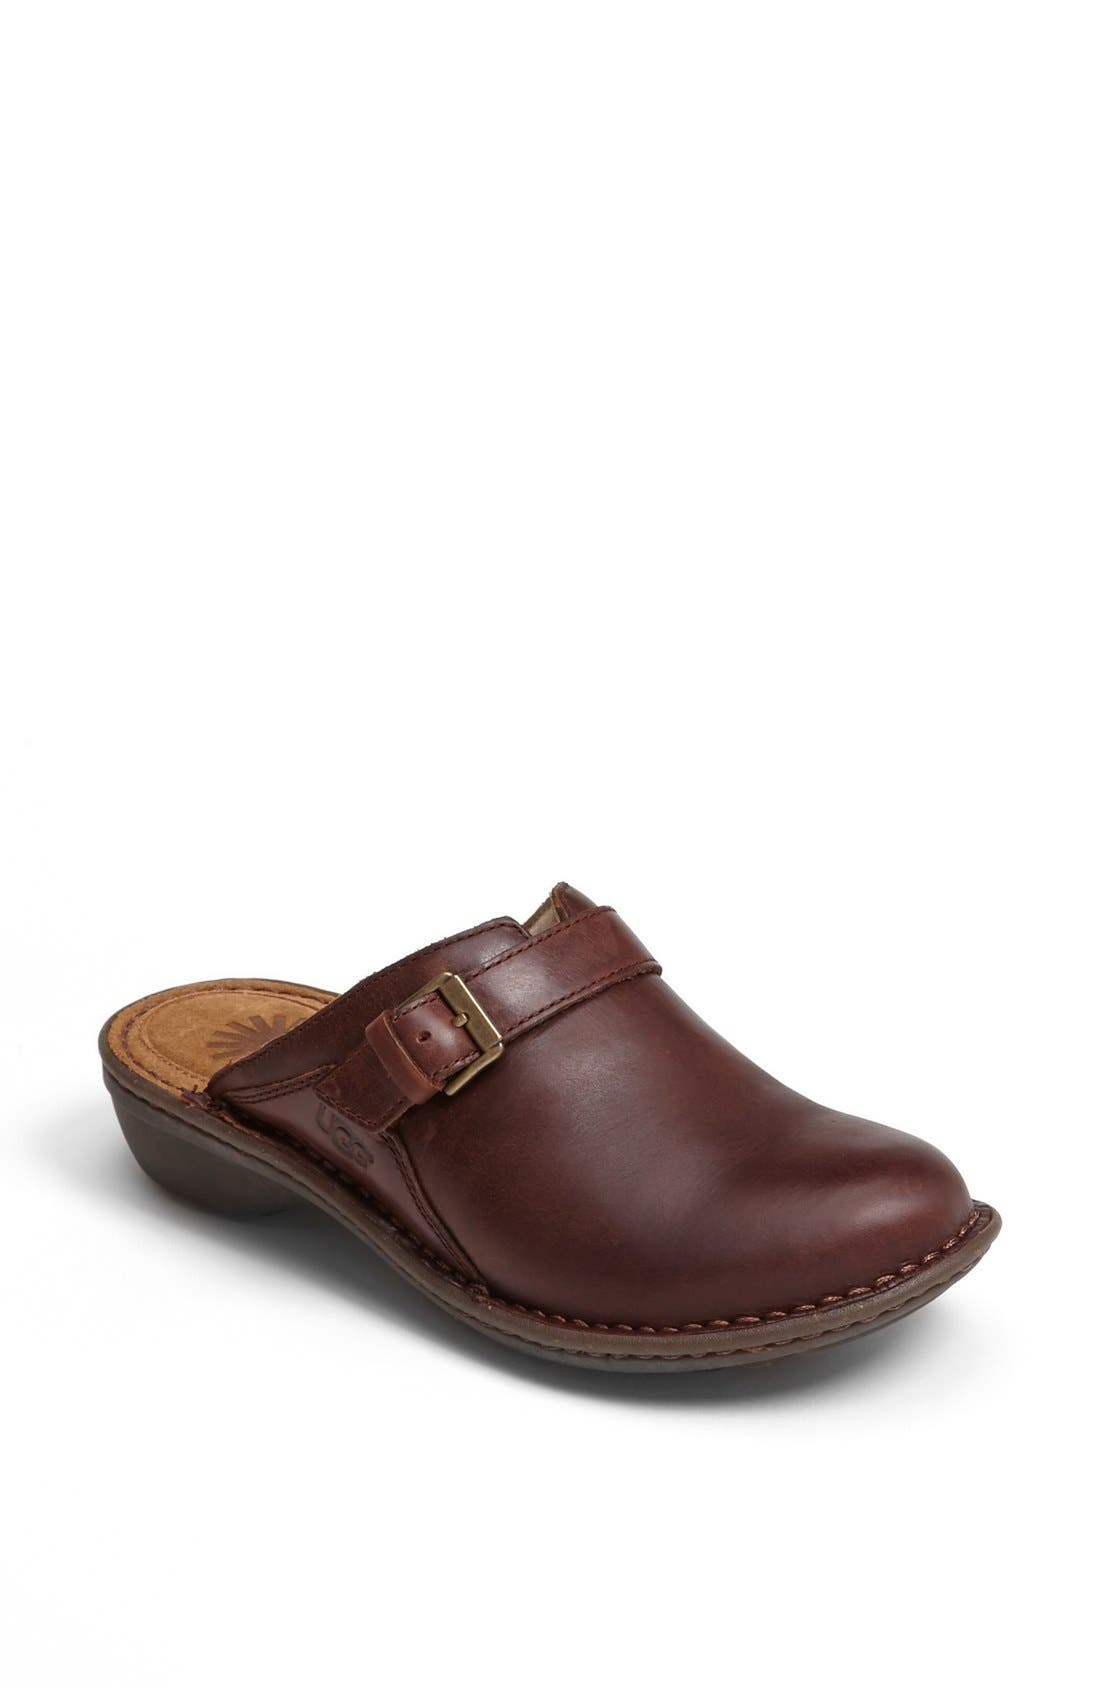 Alternate Image 1 Selected - UGG® Australia 'Livia' Clog